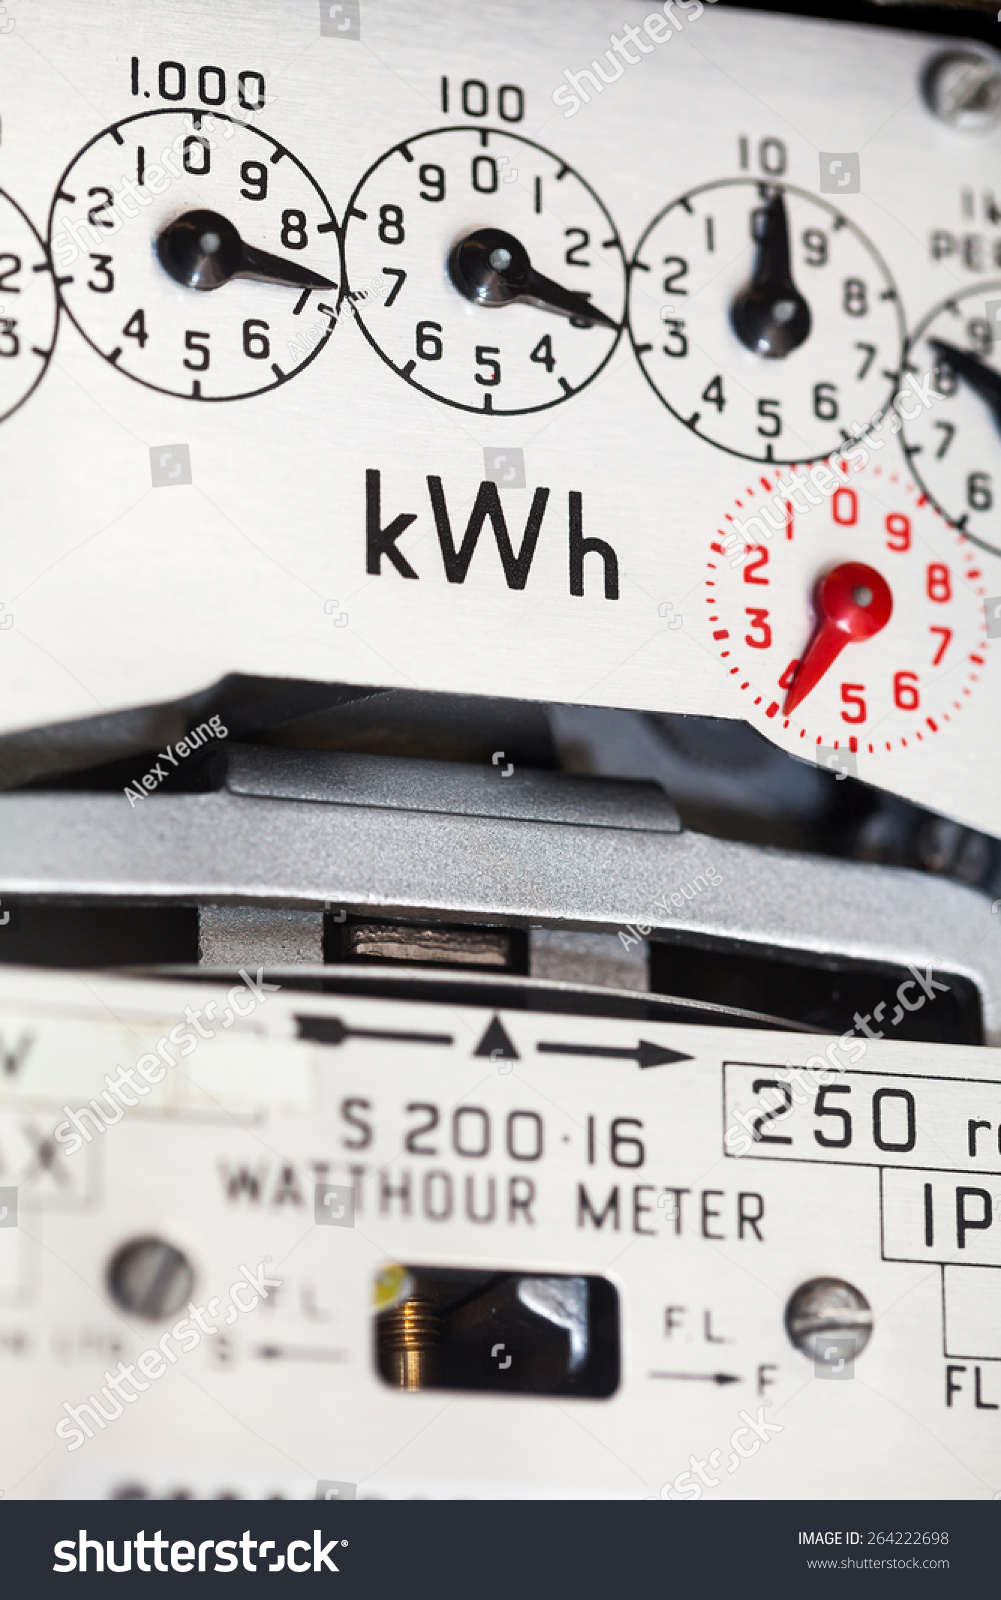 Closeup Electric Meter Showing Dials K Wh Stock Photo (Safe to Use ...